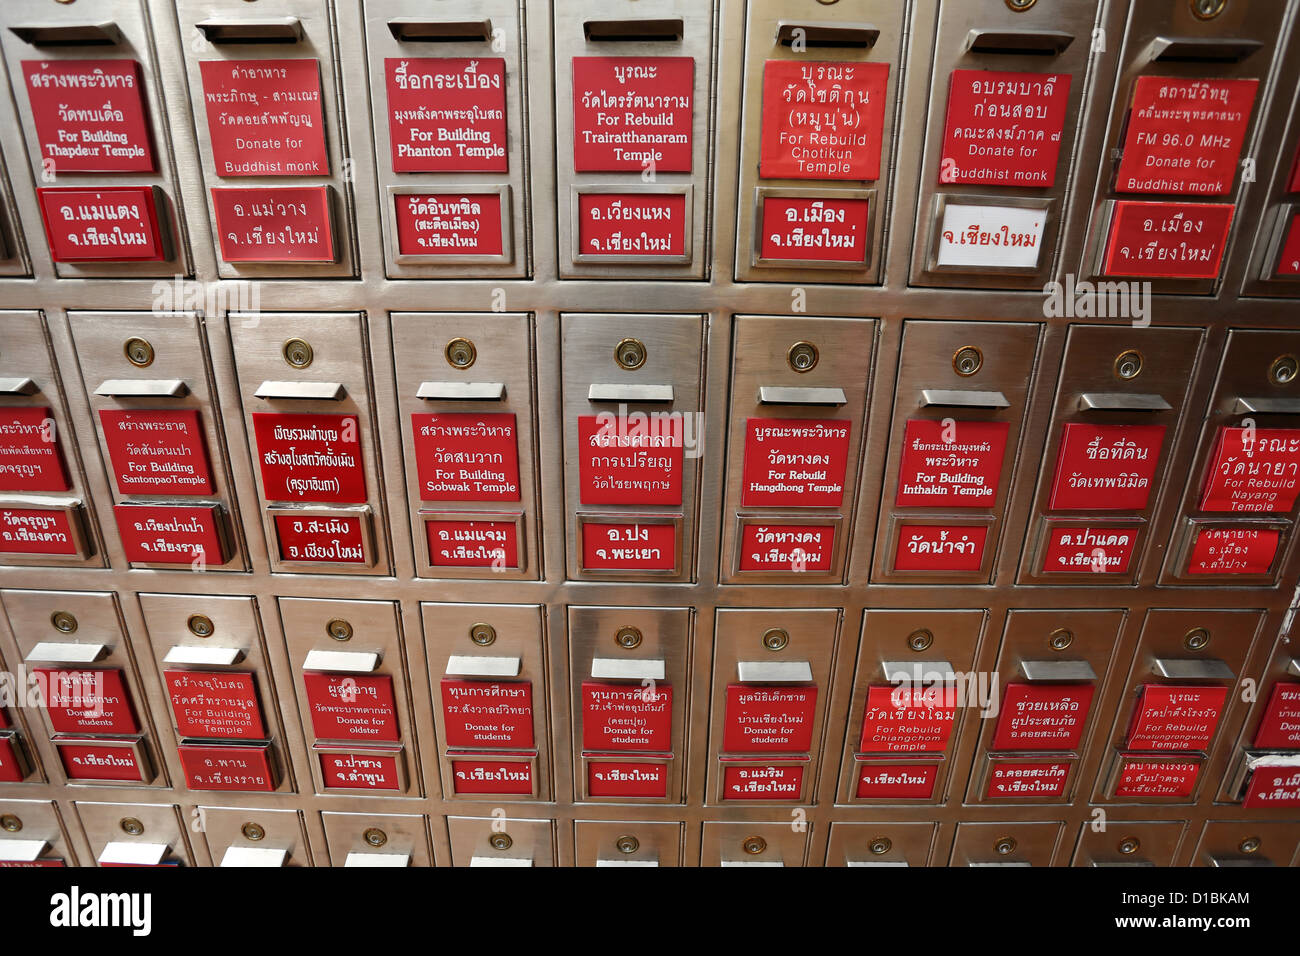 Donation boxes for donations at Wat Prathat Doi Suthep temple, Chiang Mai, Thailand - Stock Image